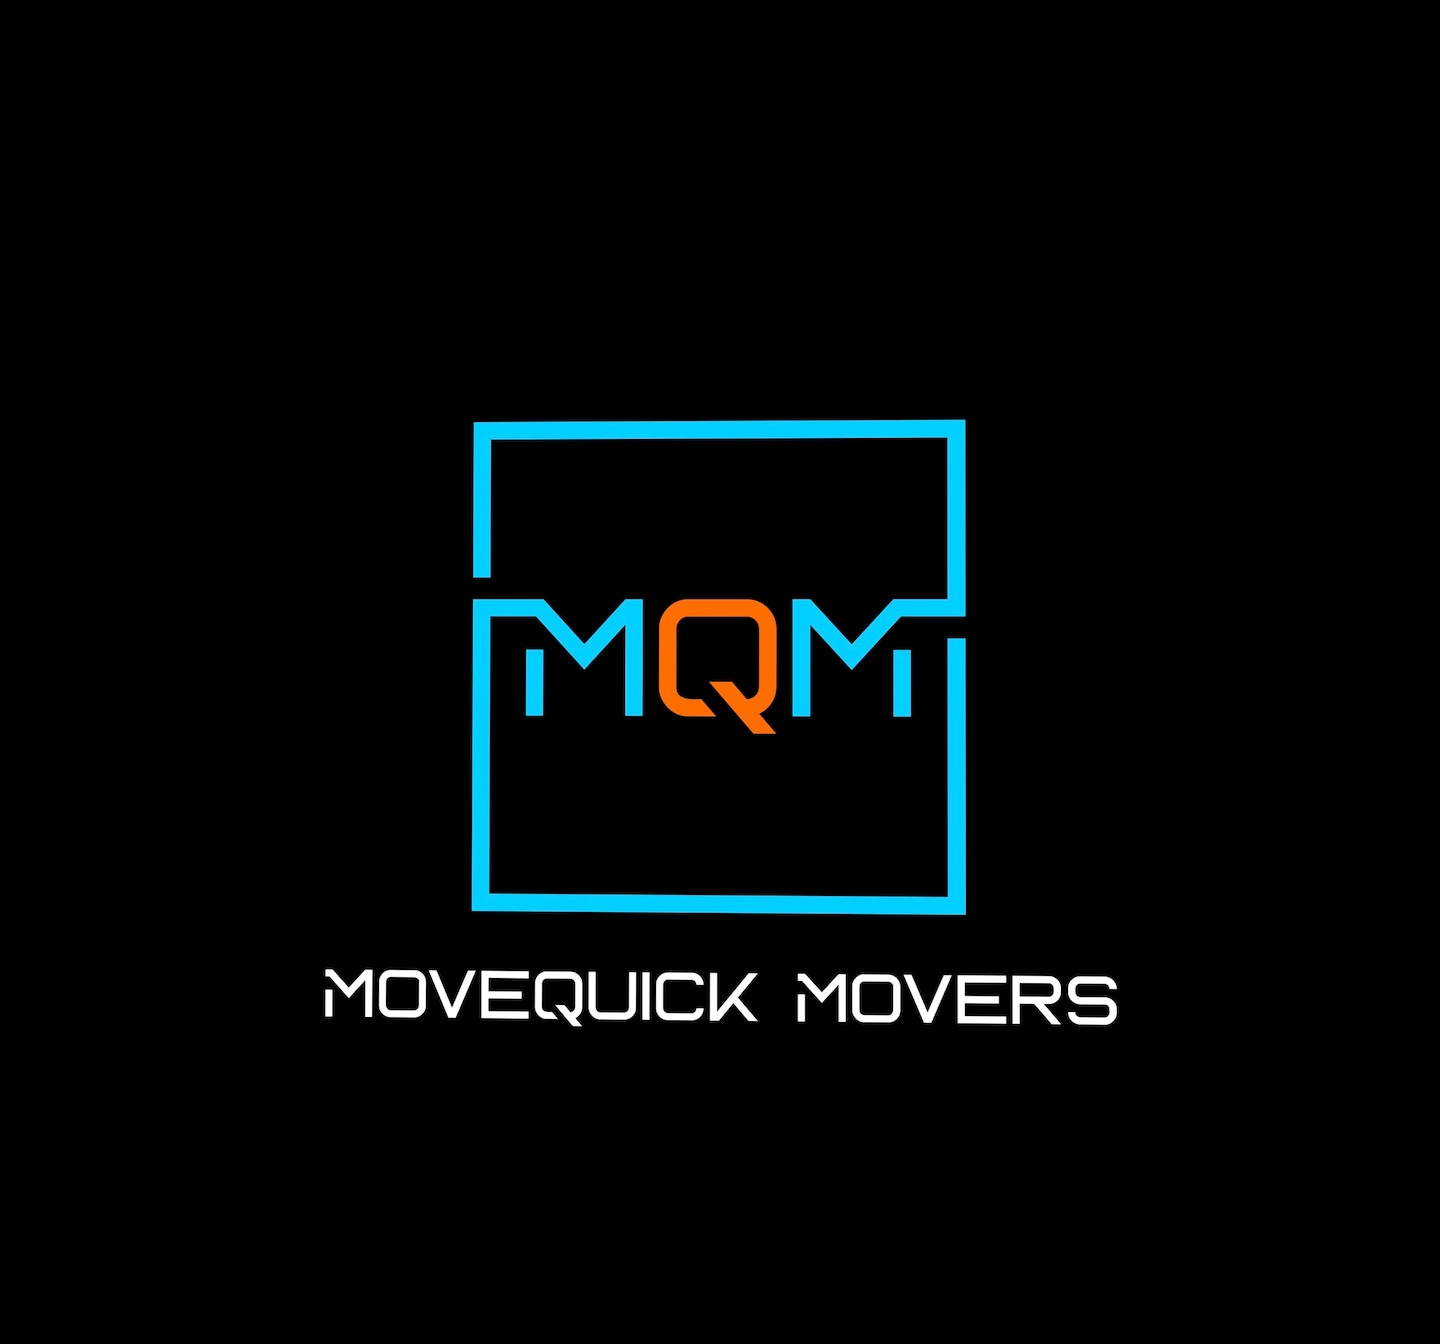 Movequick Movers LLC